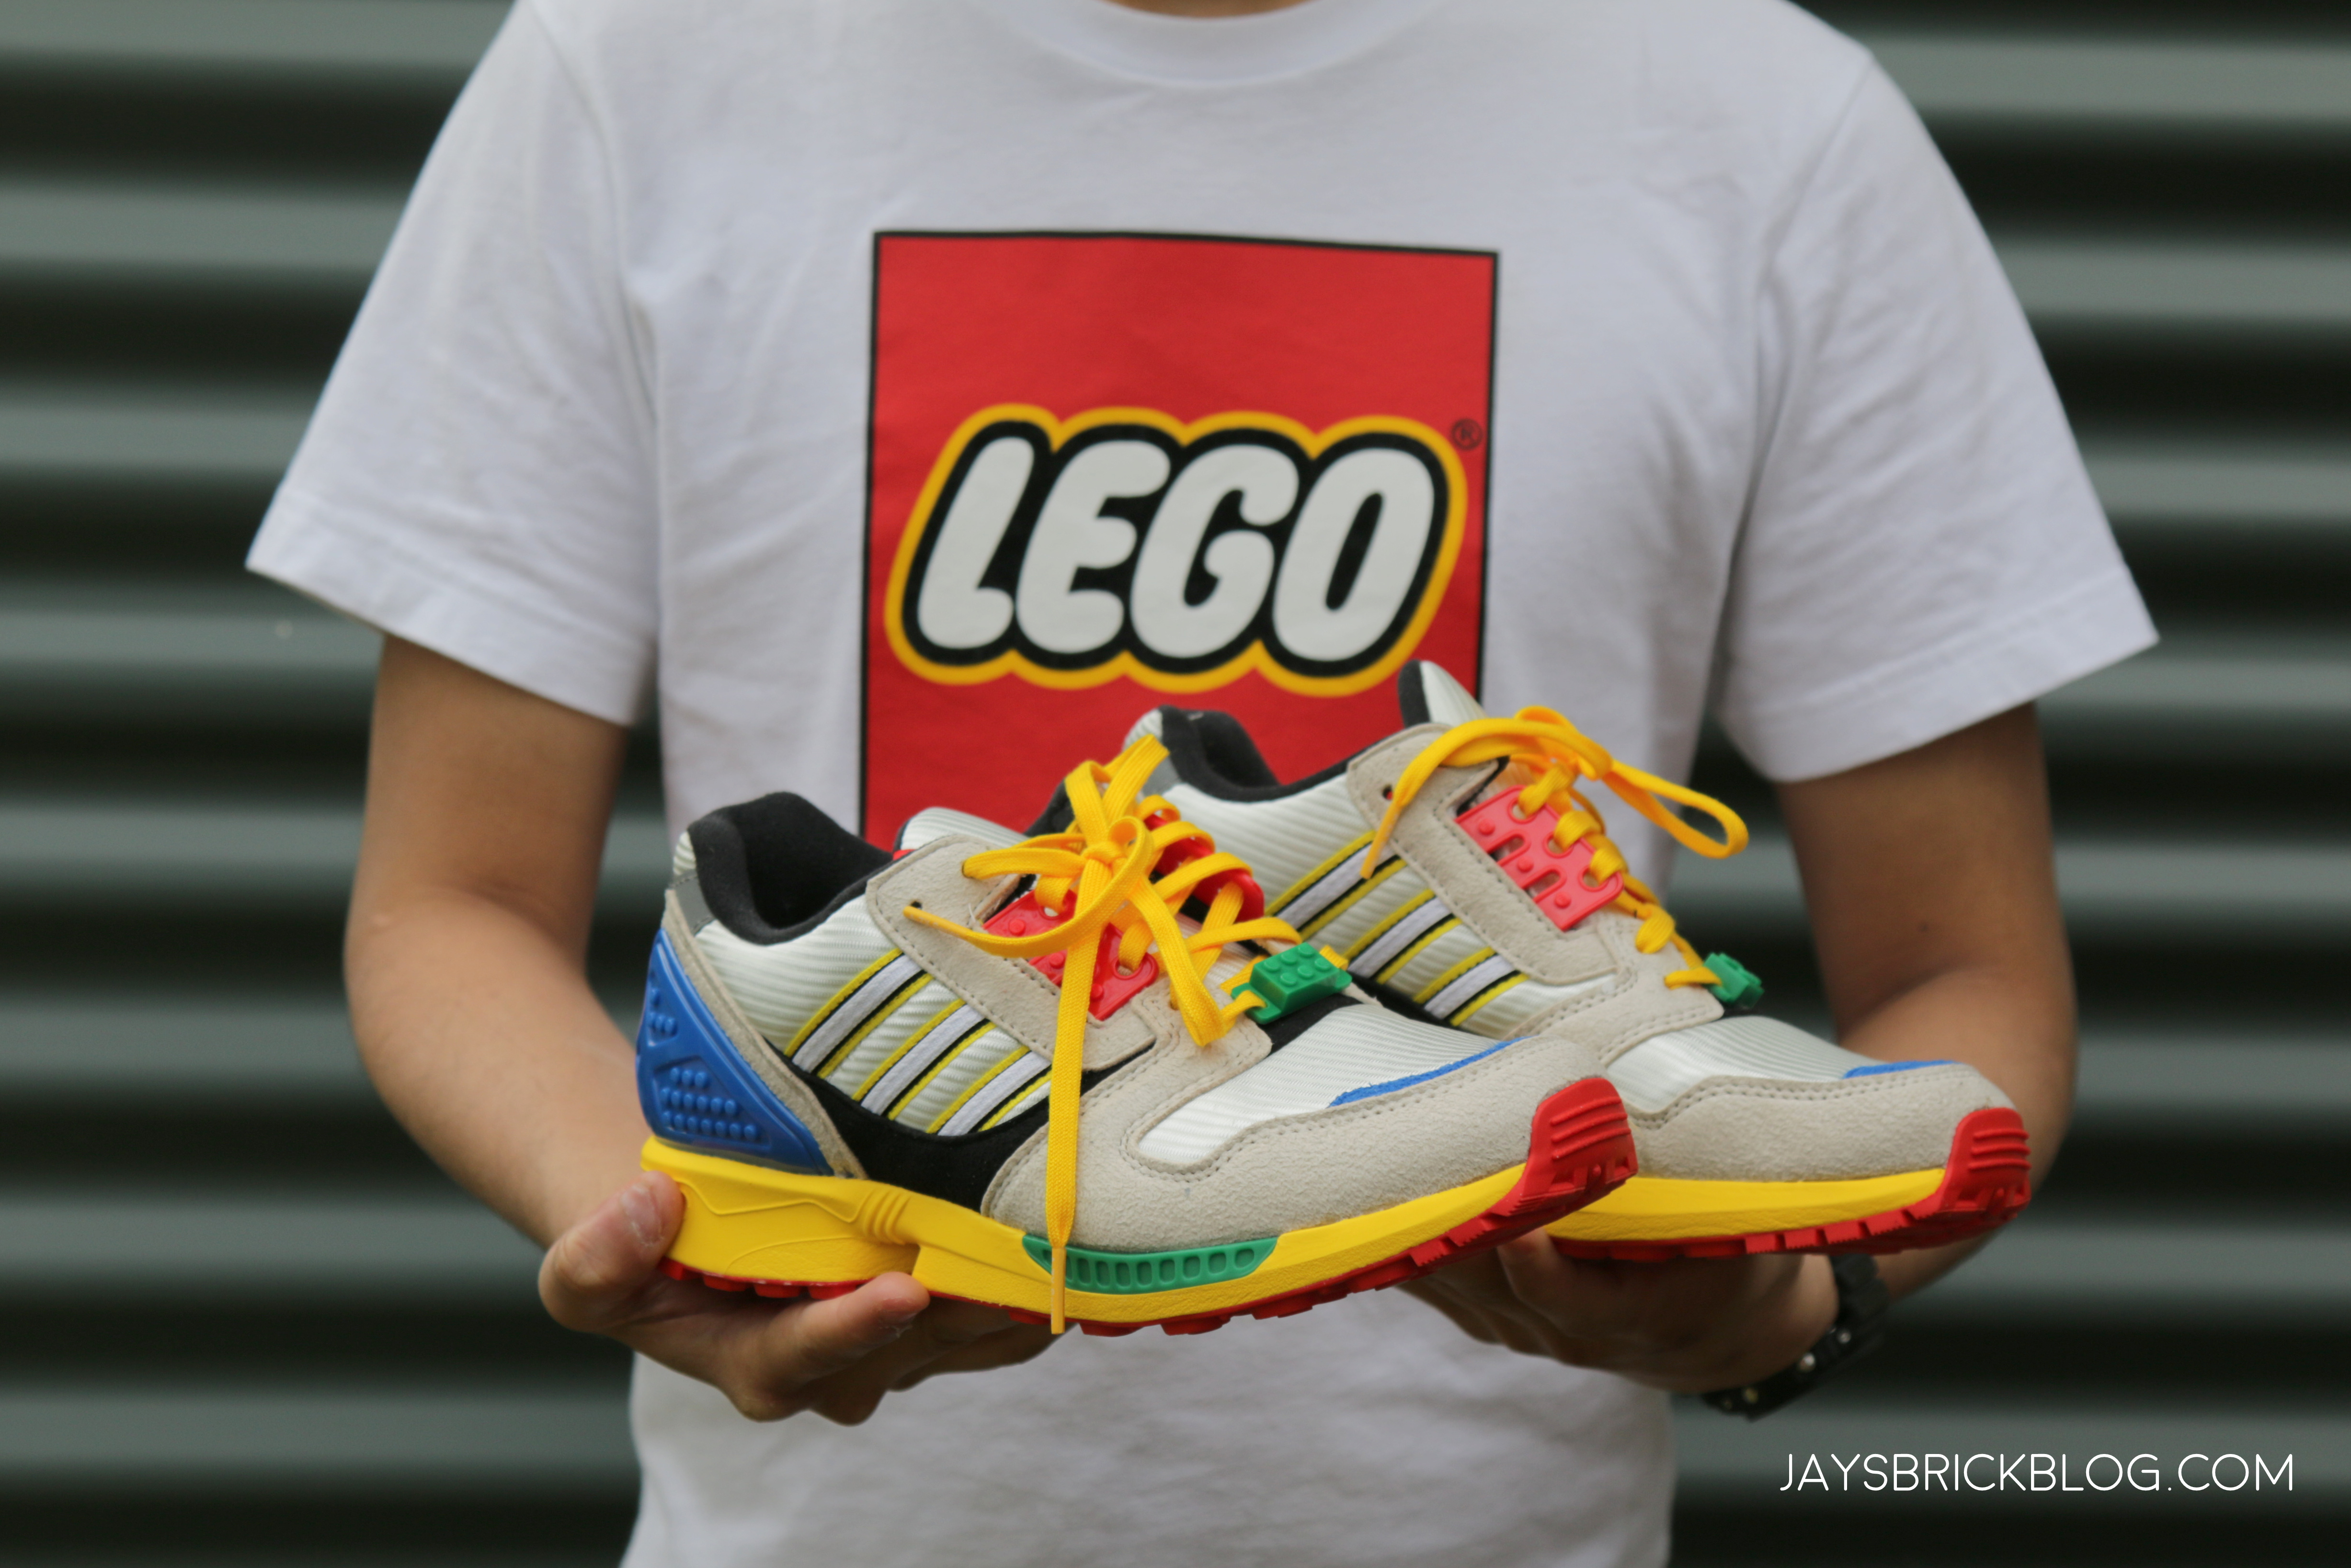 Review: LEGO x Adidas ZX 8000 Sneaker - Jay's Brick Blog